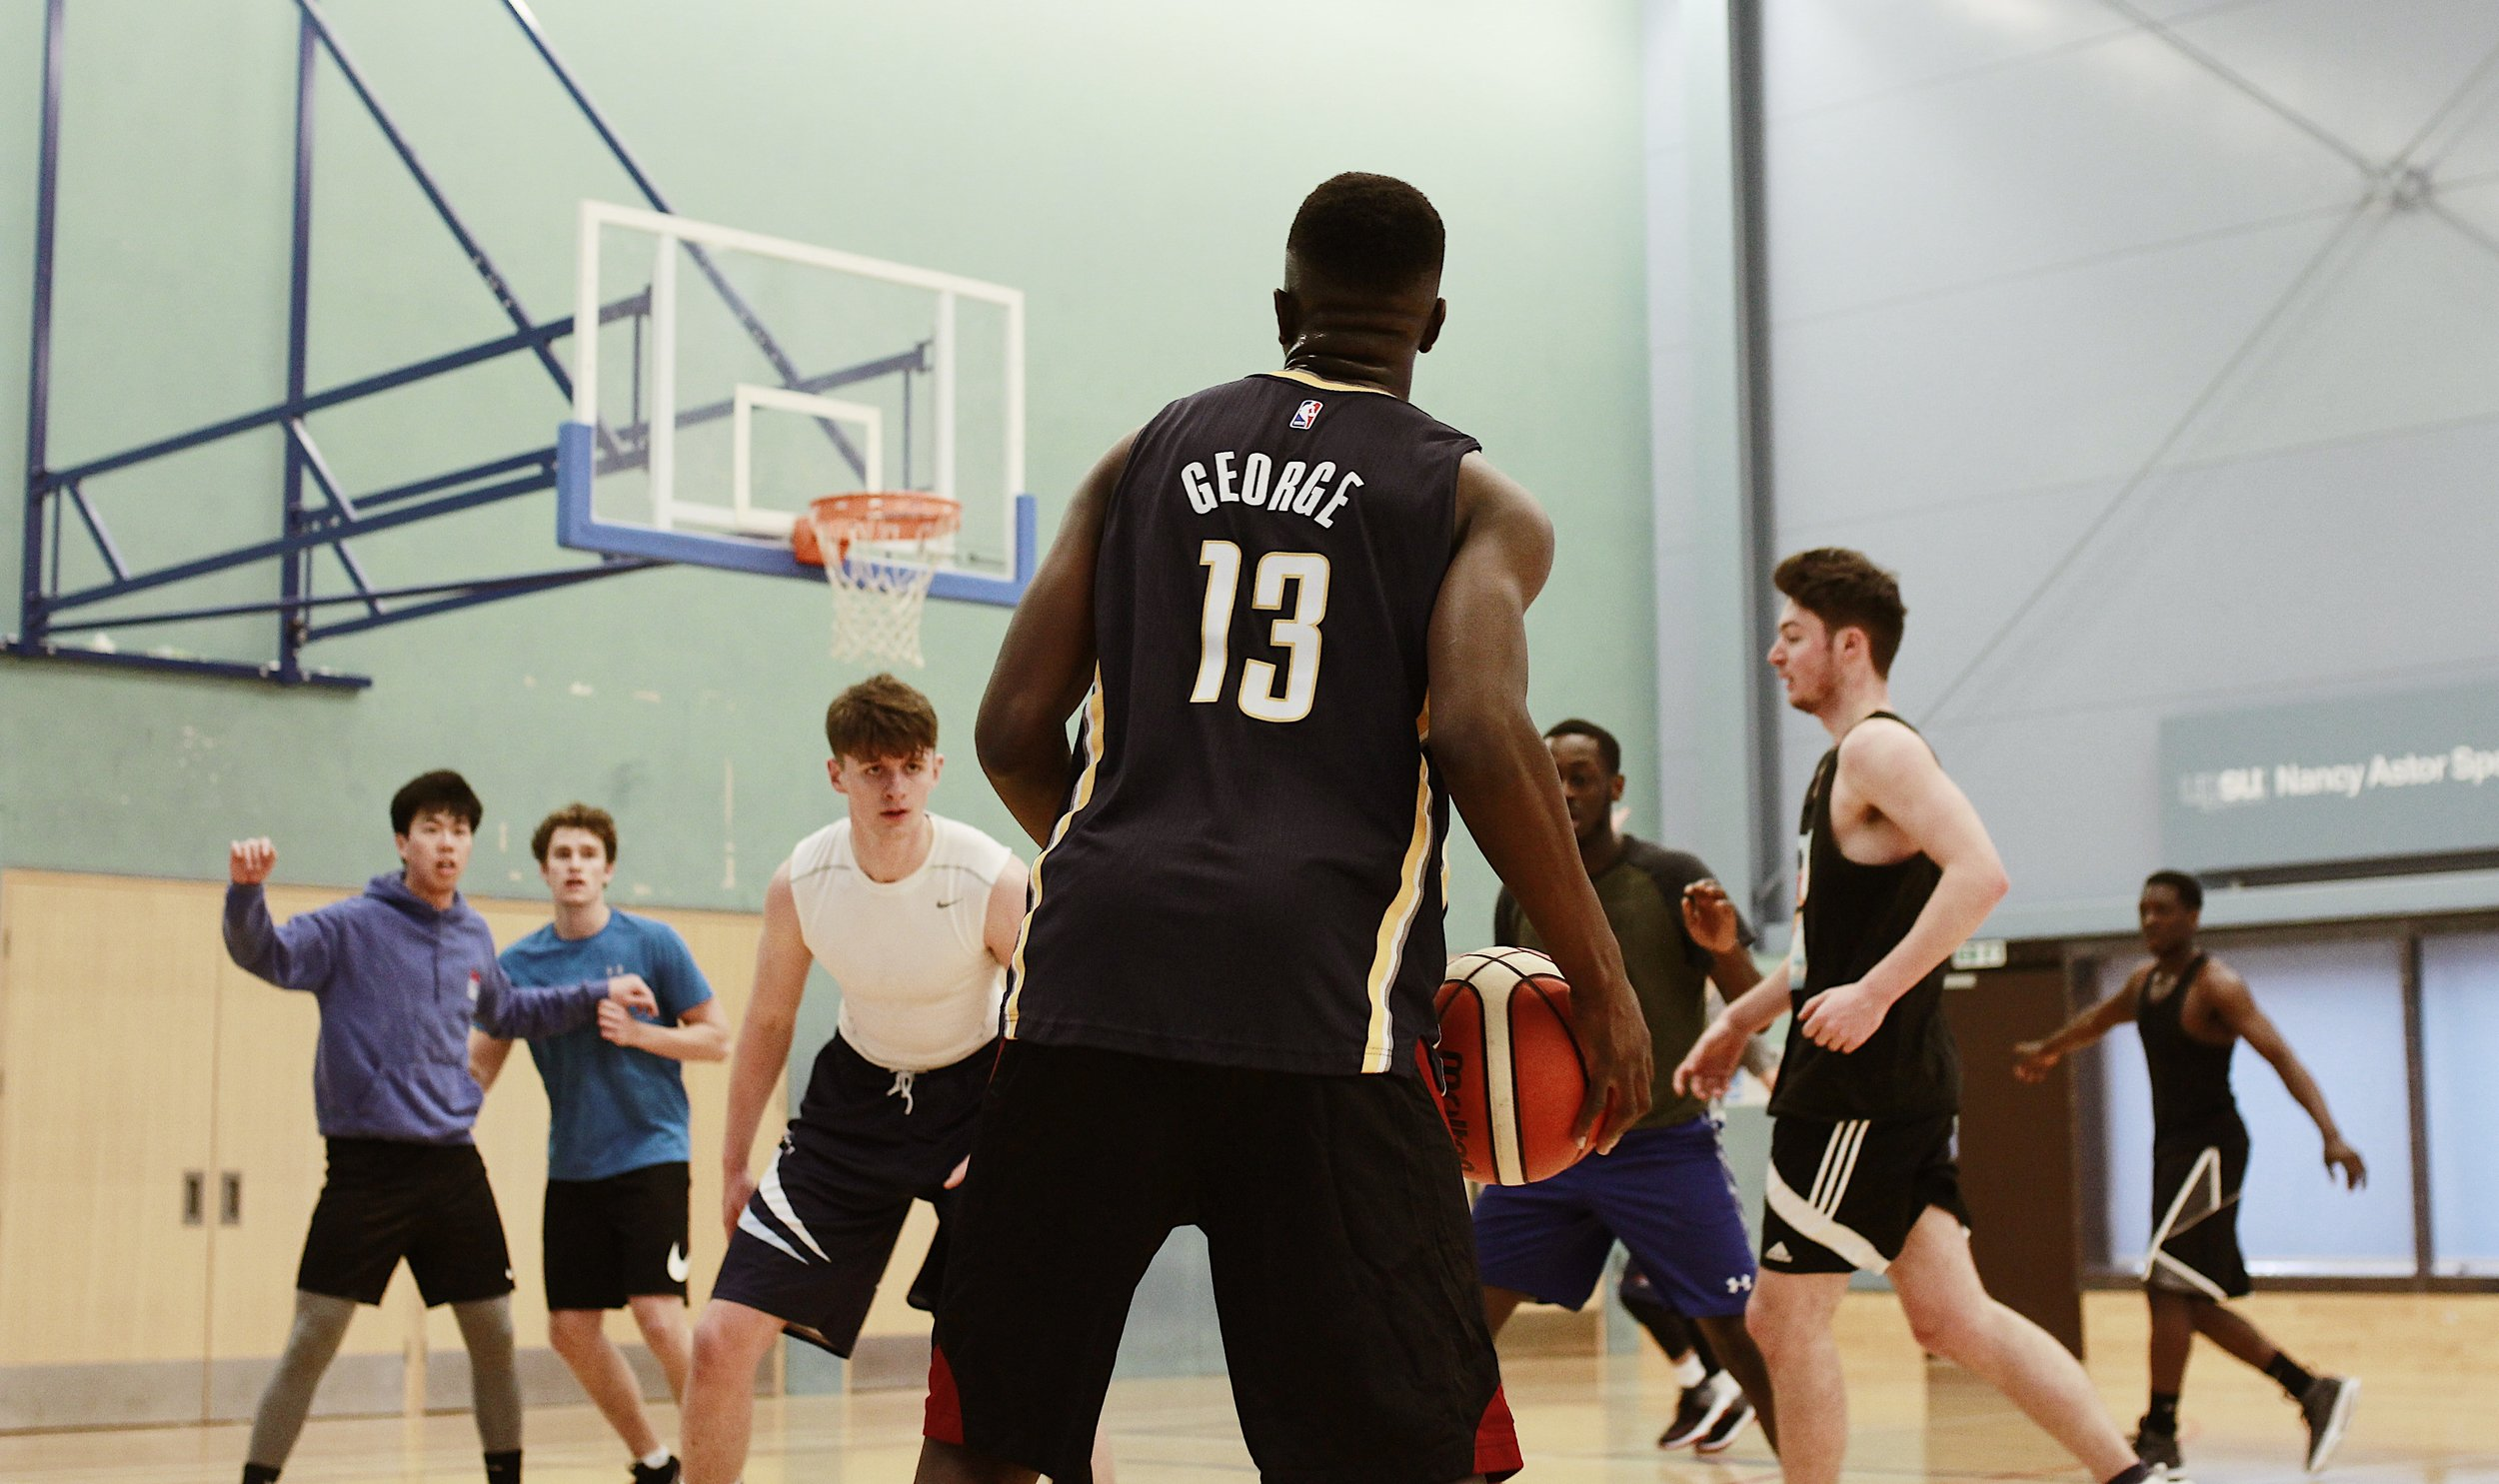 Pick-up game, University of Plymouth Basketball Club